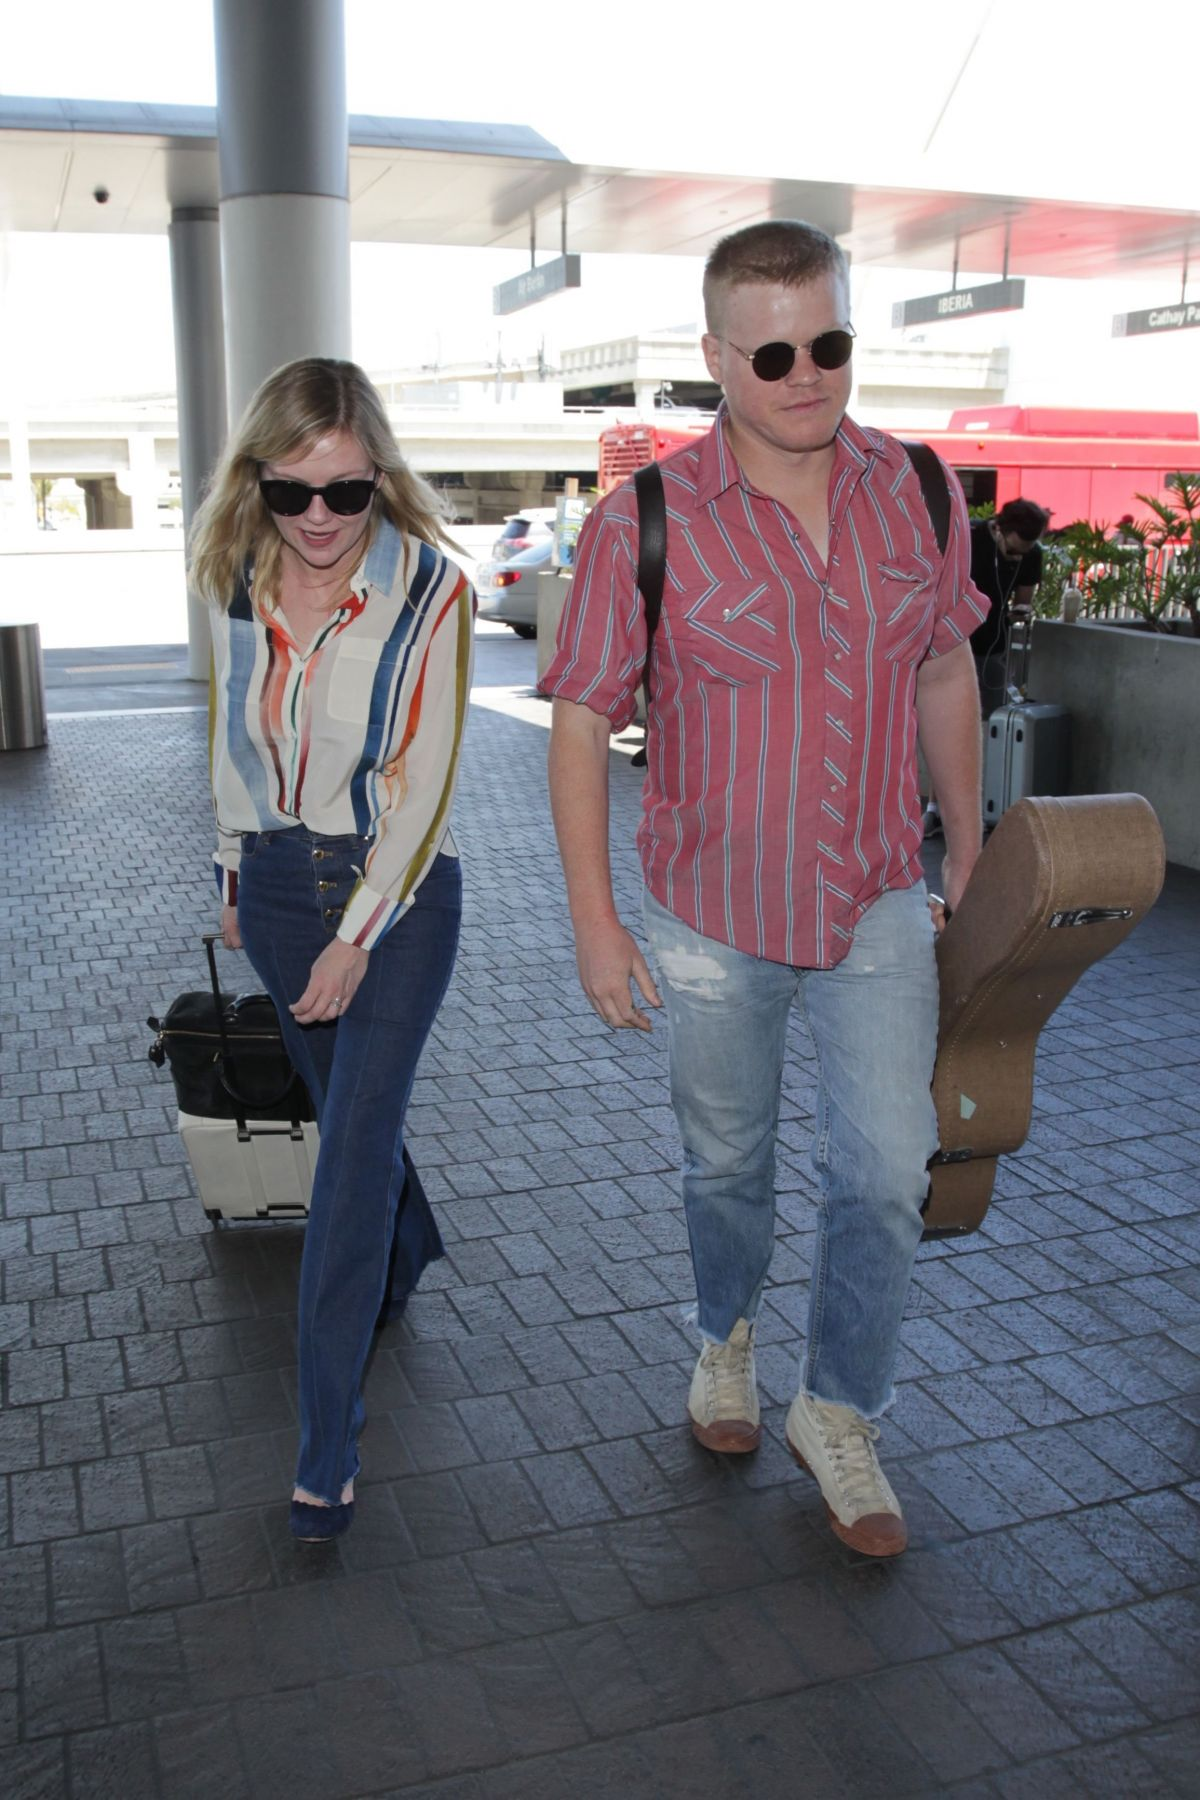 KIRTSEN DUNST at LAX Airport in Los Angeles 05/21/2017